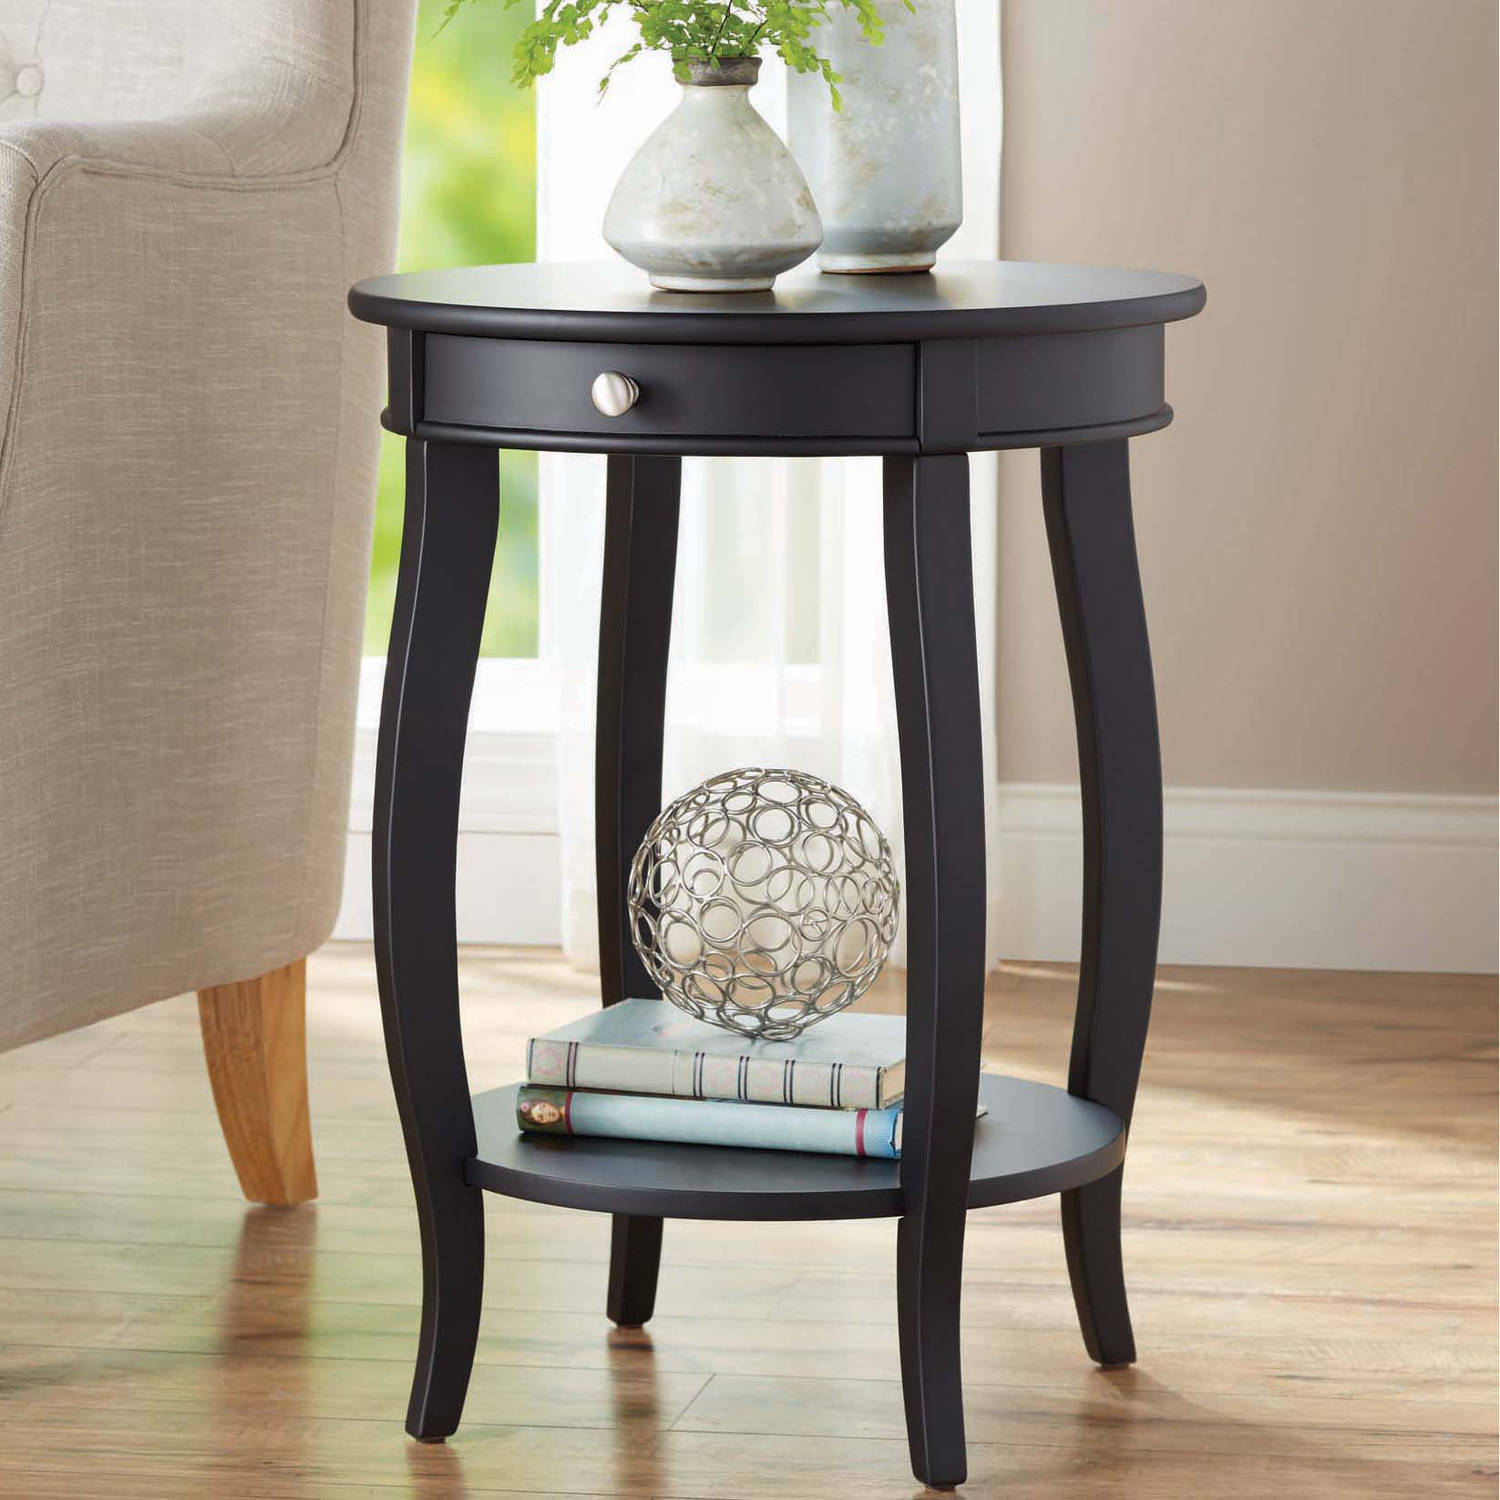 Better Homes Gardens Round Accent Table with Drawer Multiple